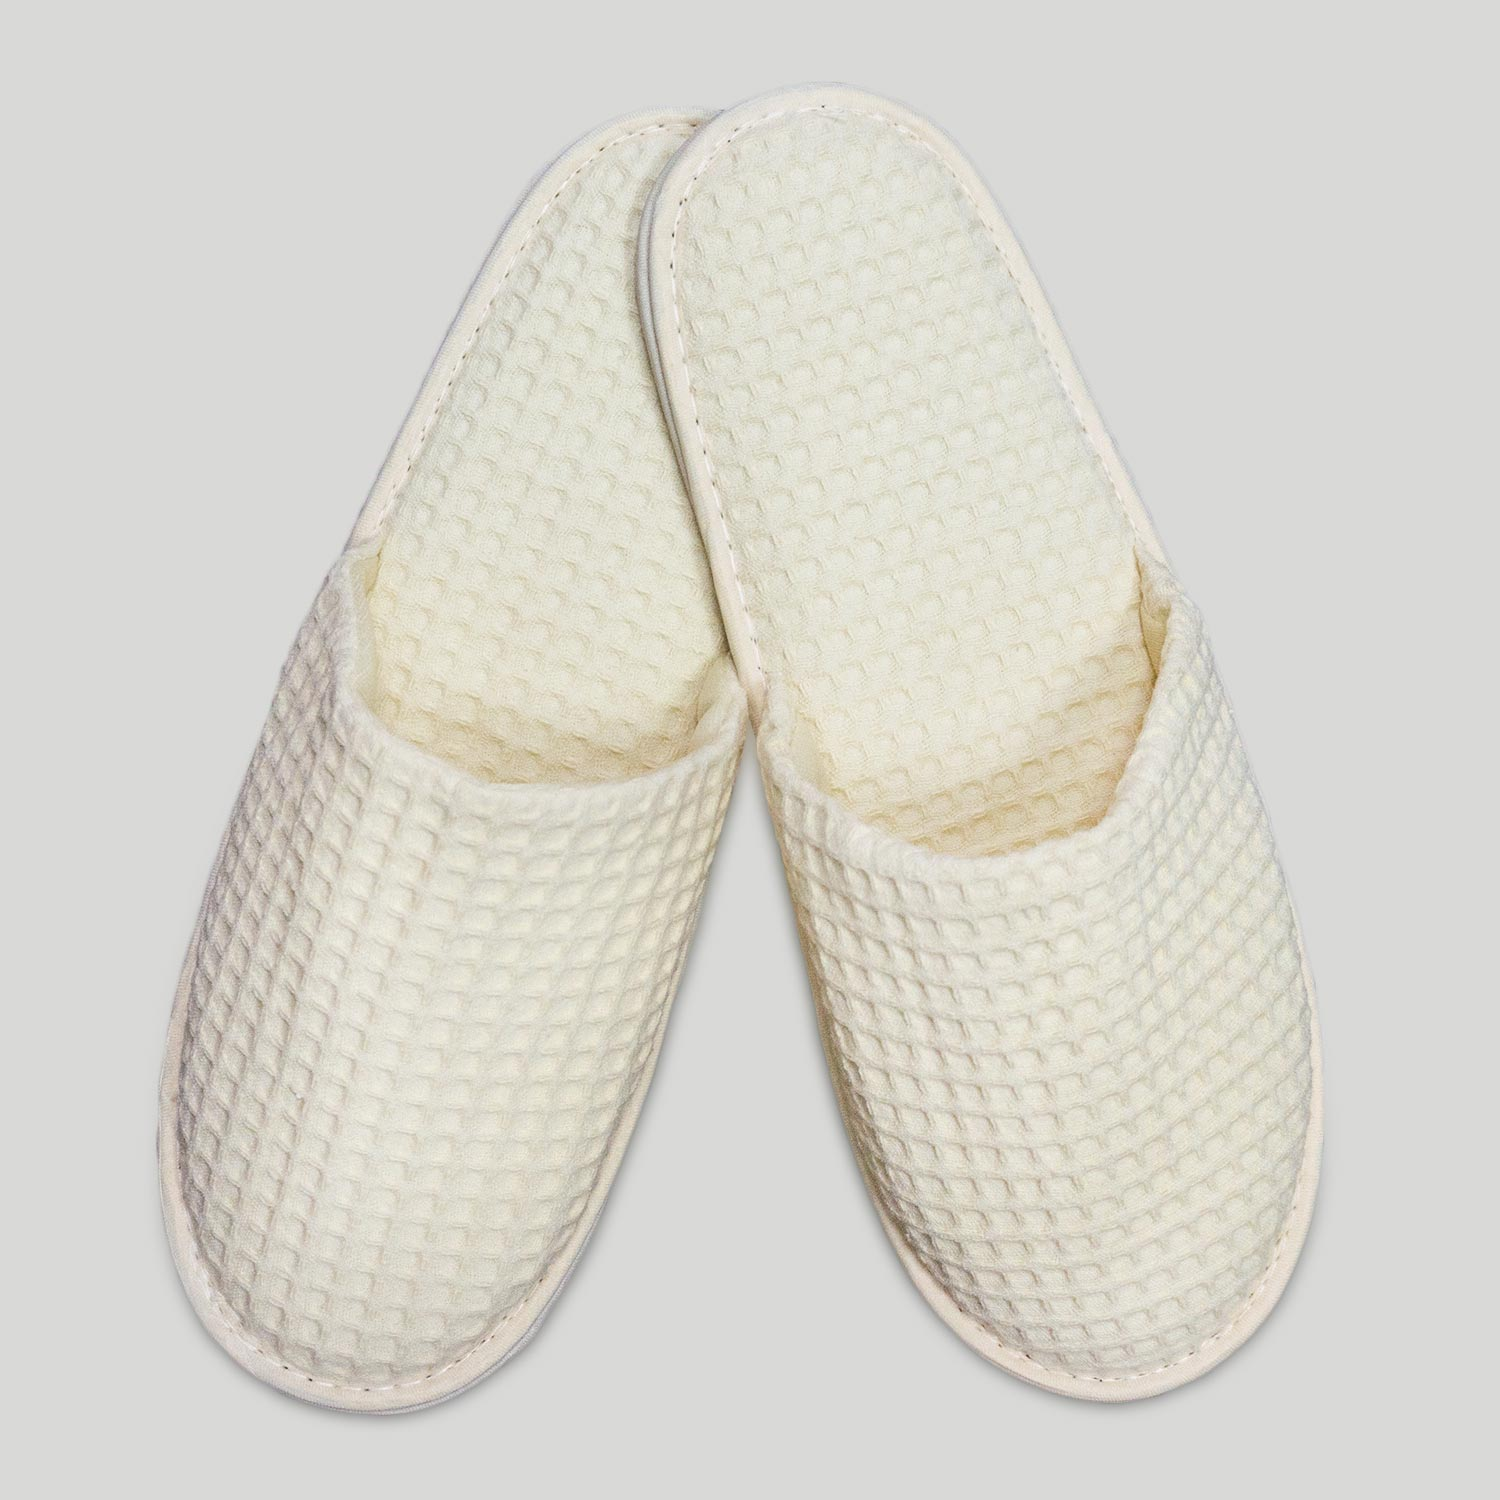 Baby Hotel Slippers Beige Closed Toe Adult Waffle Slippers